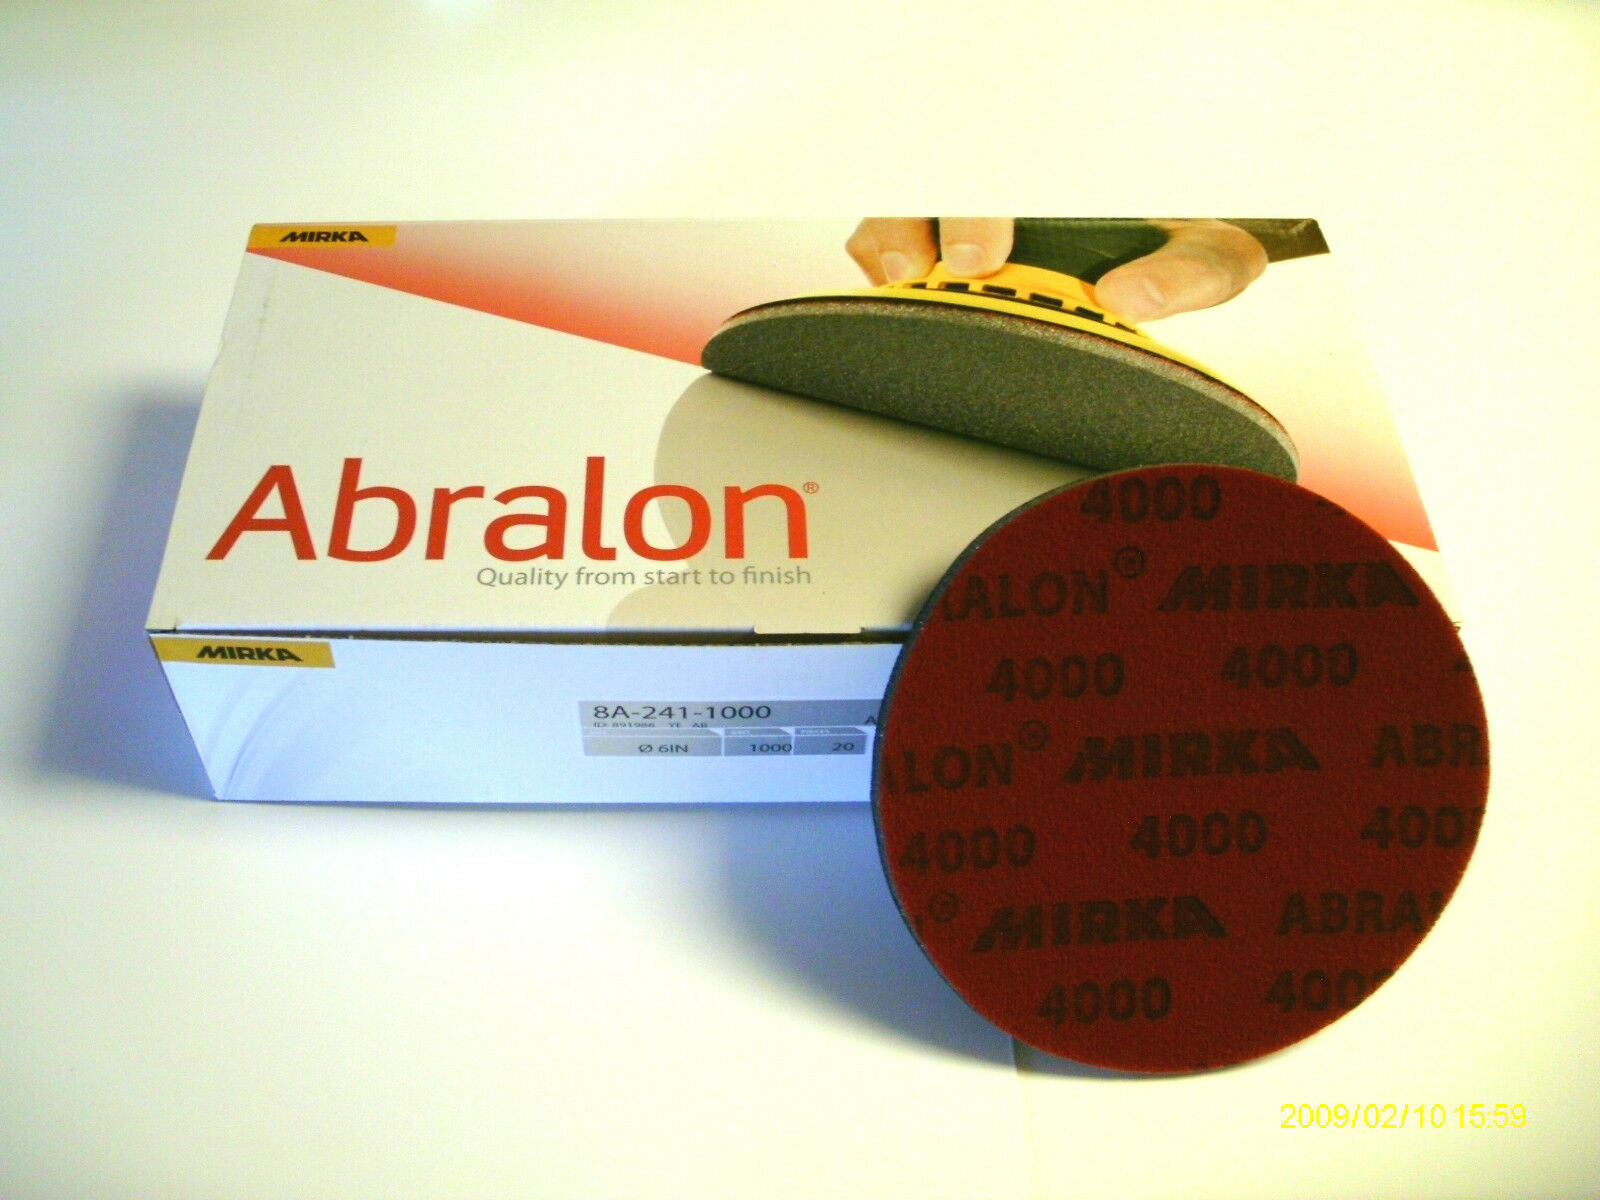 20  6   ABRALON PADS BRAND NEW 4000 GRIT - AUTHENTIC PADS BY MIRKA